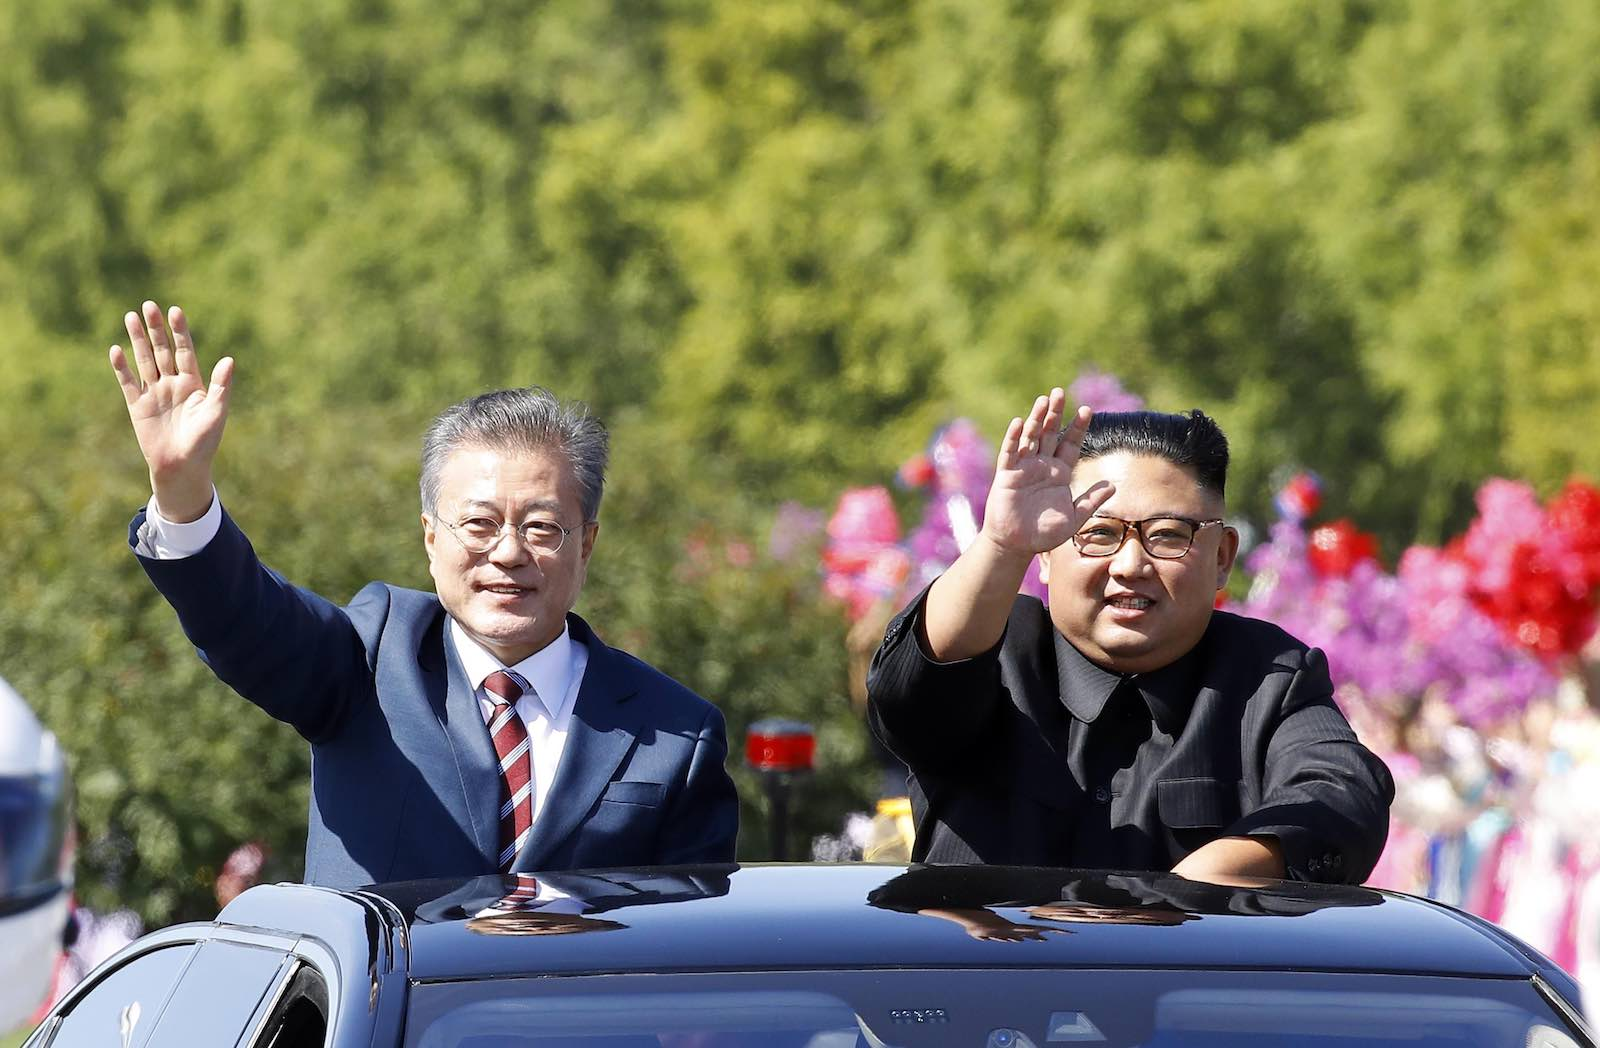 South Korean President Moon Jae-in and North Korean leader Kim Jong-un in a car parade, September 2018 in Pyongyang (Photo by Pyeongyang Press Corps/Getty Images)